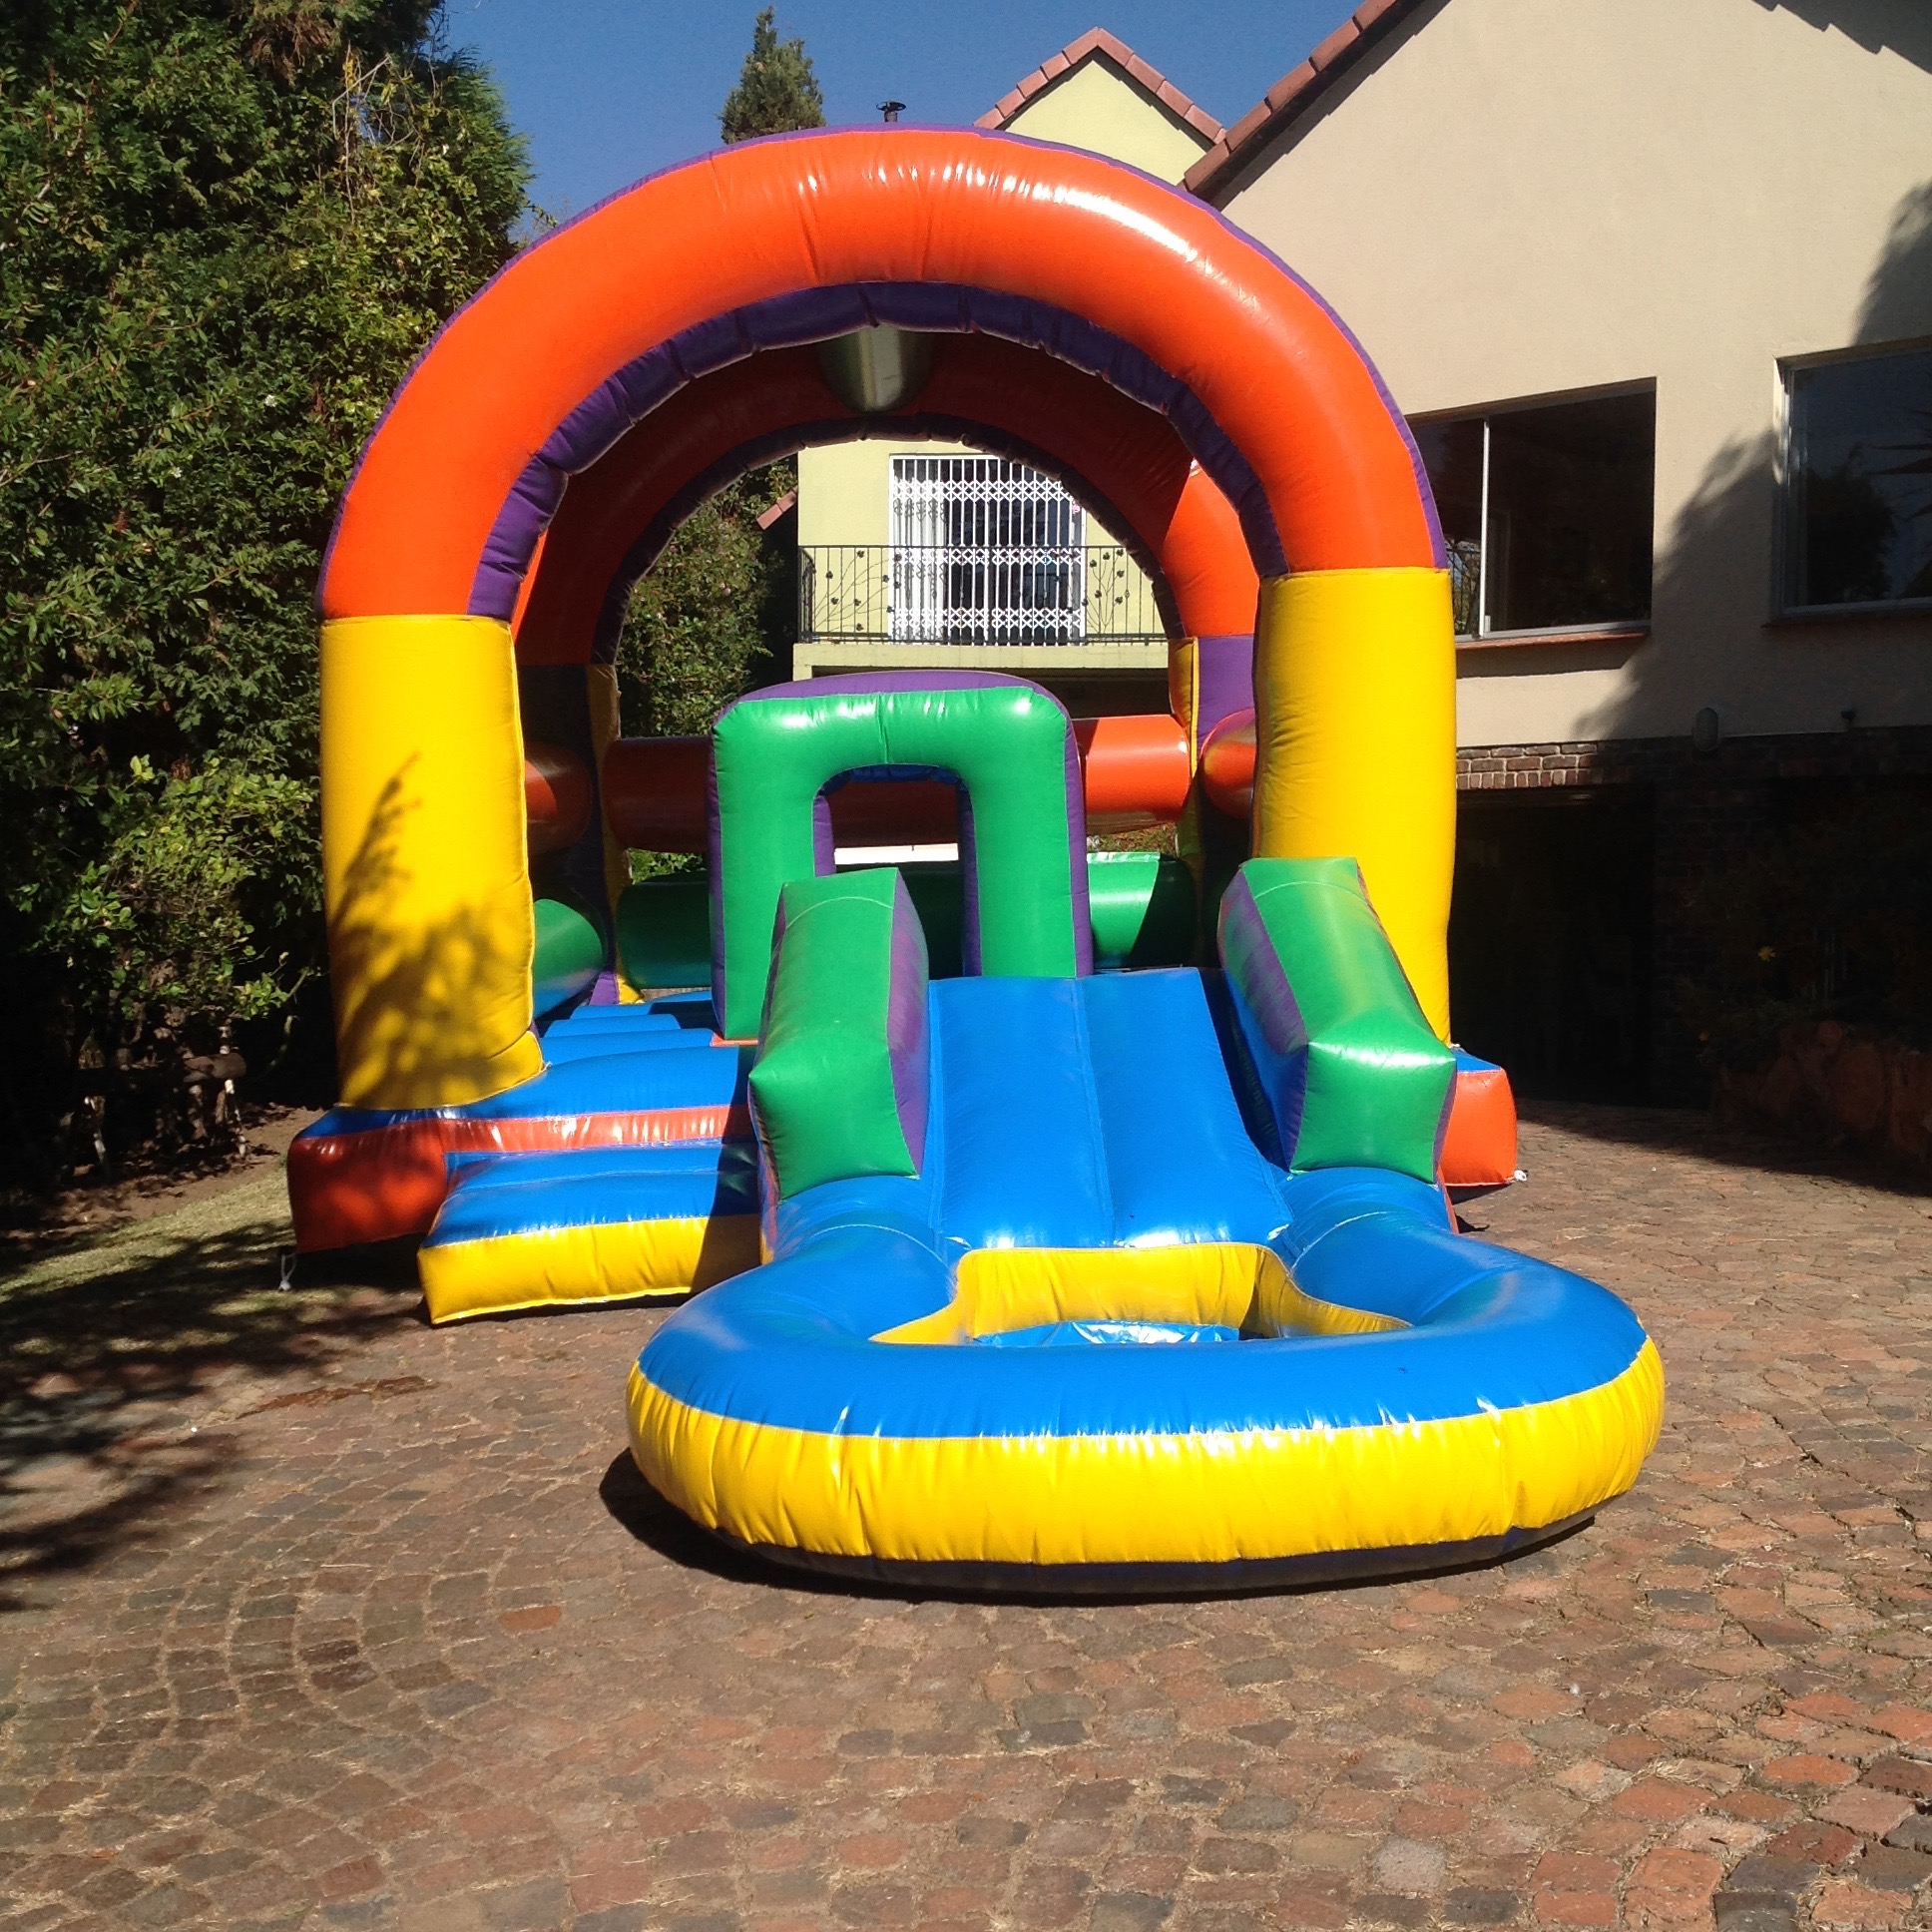 Cool Kids 4in1 6.5mx4m jumping castle